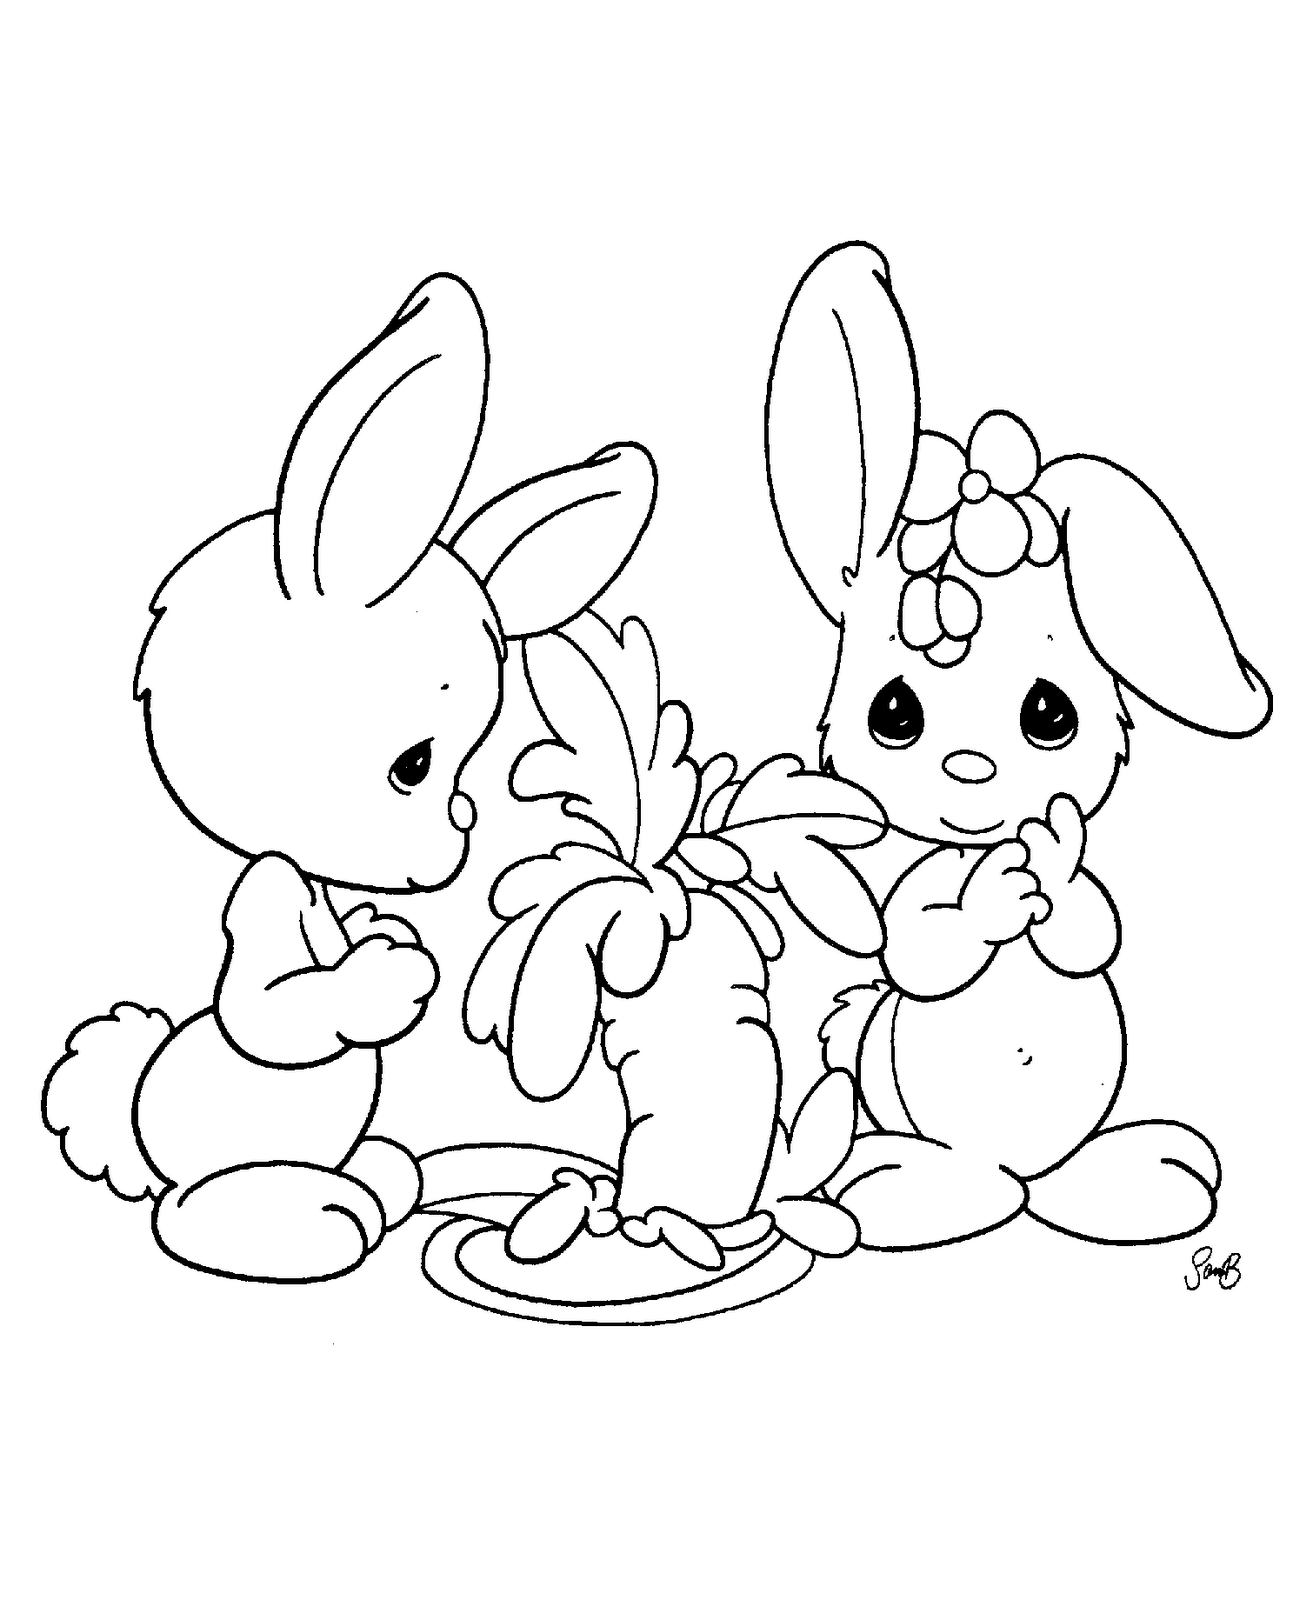 precious moments coloring pages printable precious moments for love coloring pages gtgt disney moments precious coloring printable pages